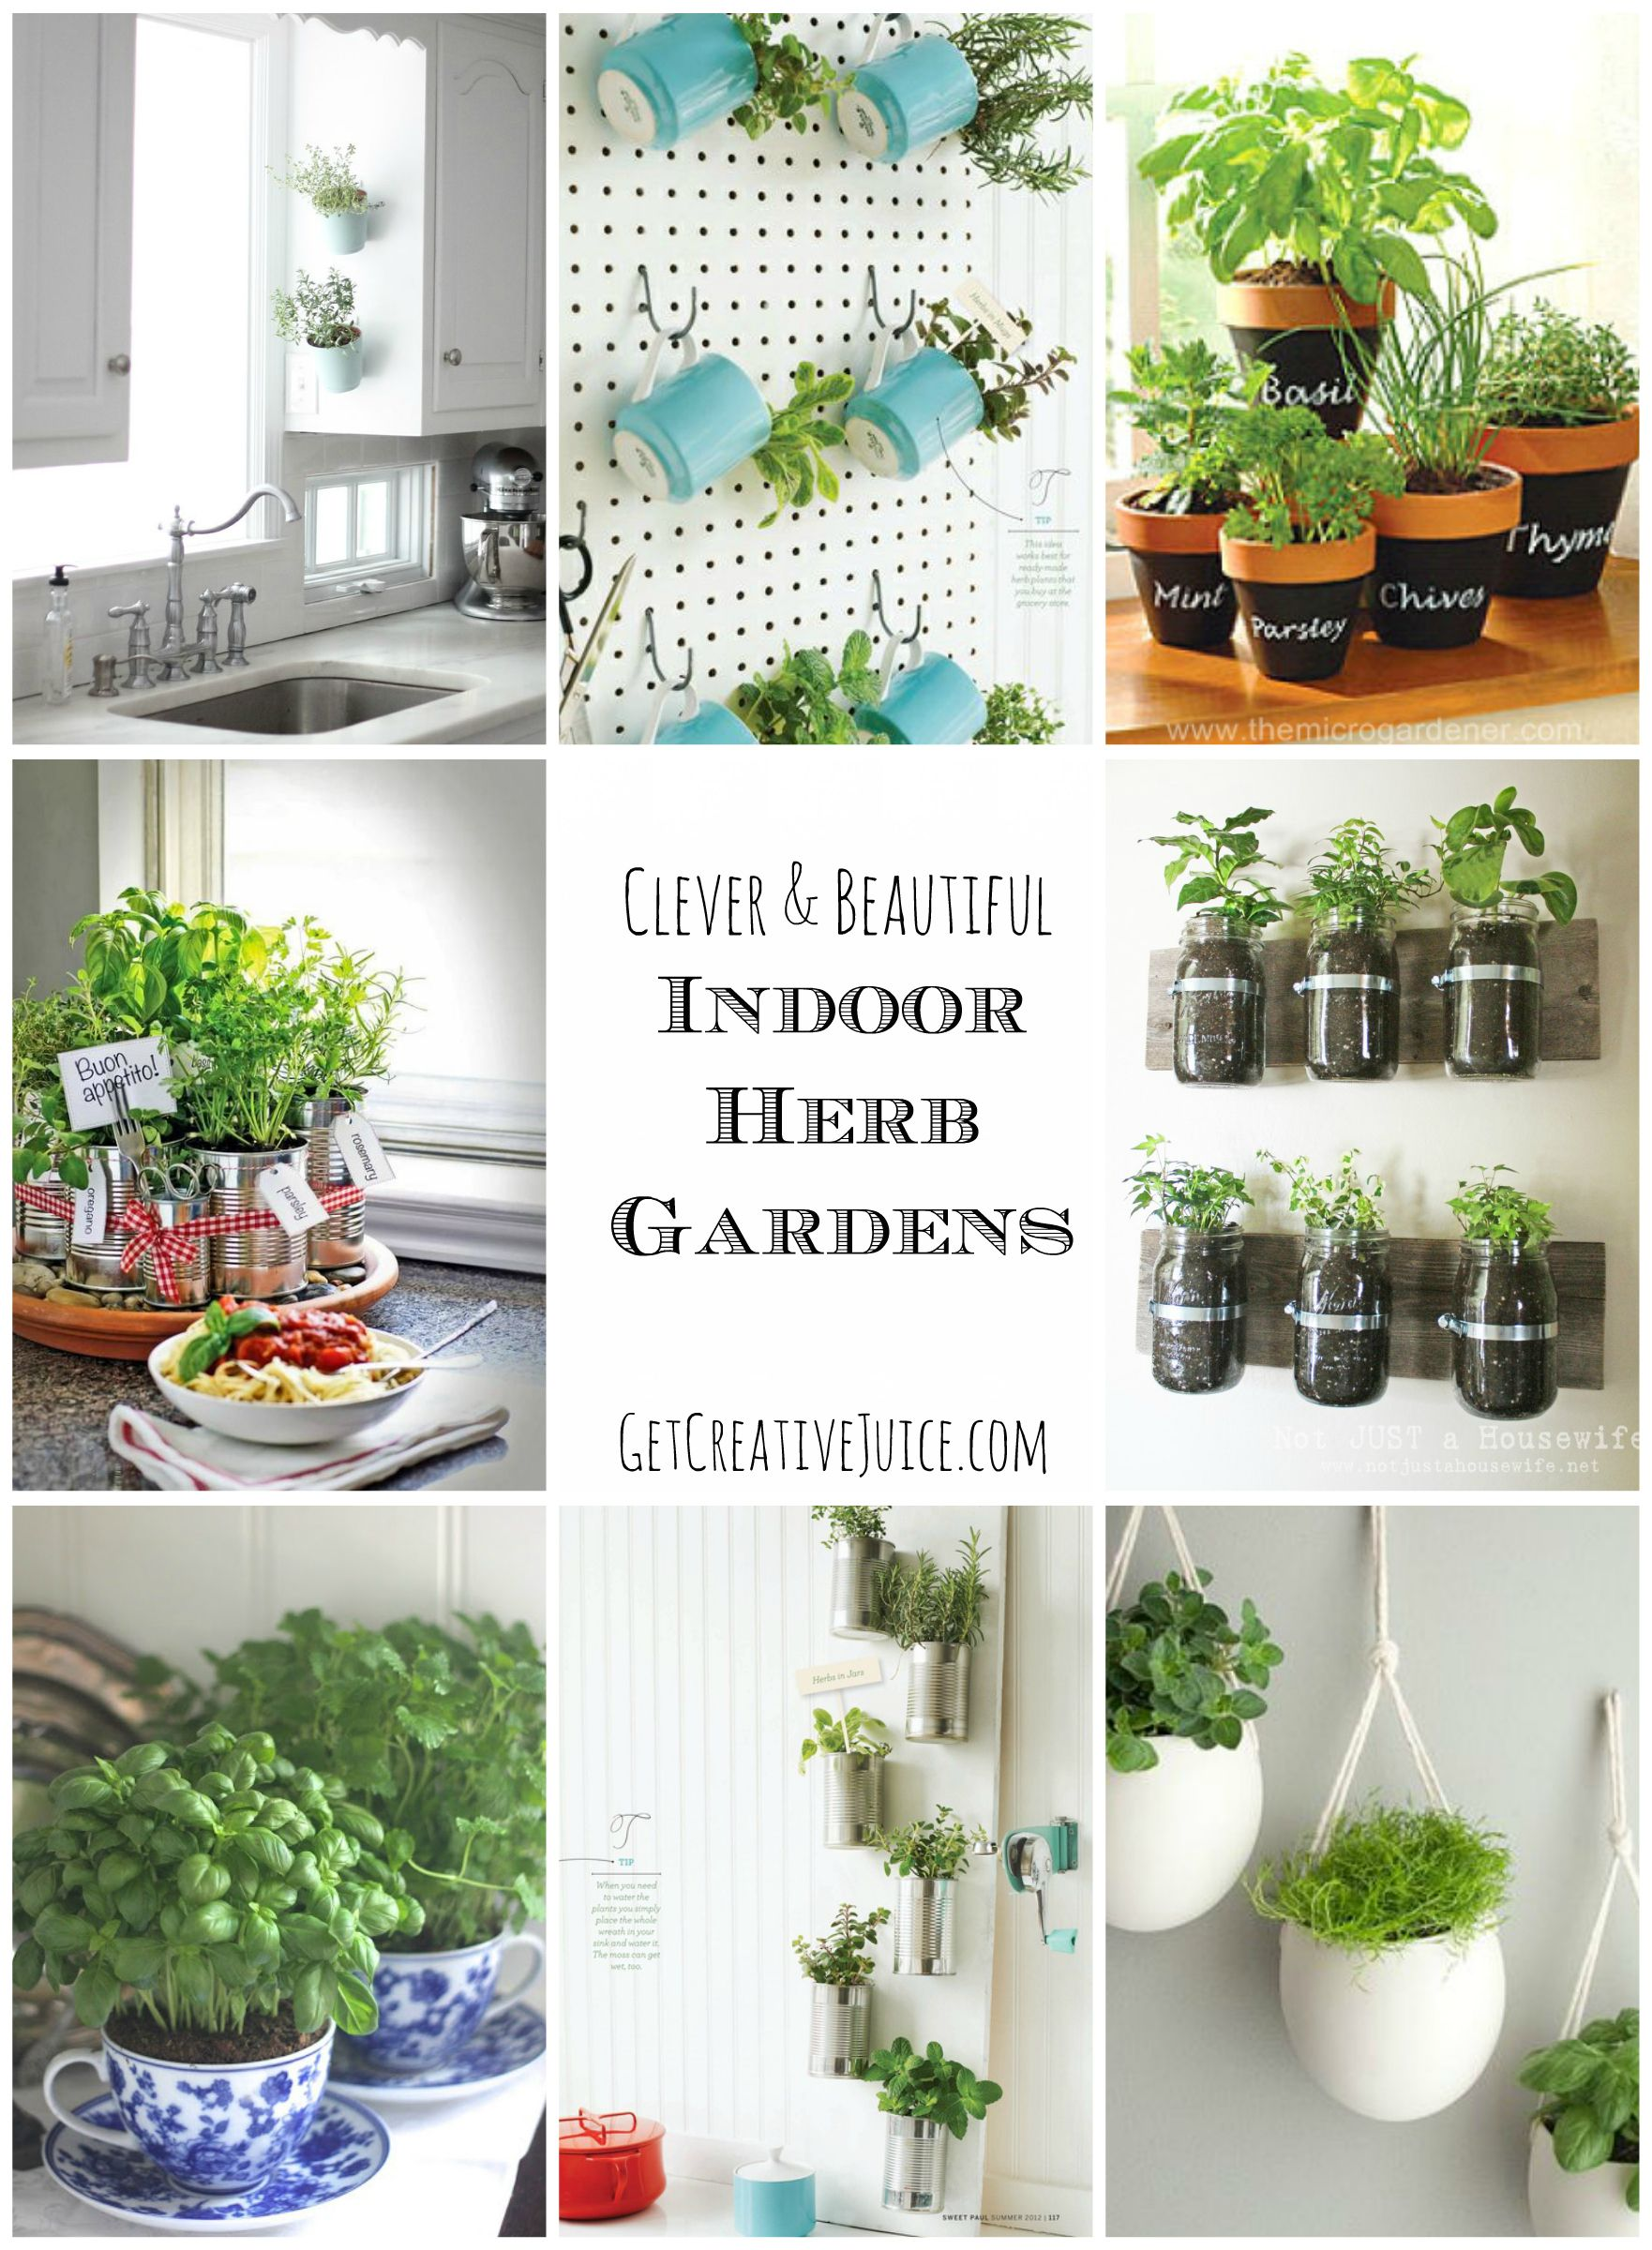 20 Ways to Start an Indoor Herb Garden Gardens Jars and Hanging